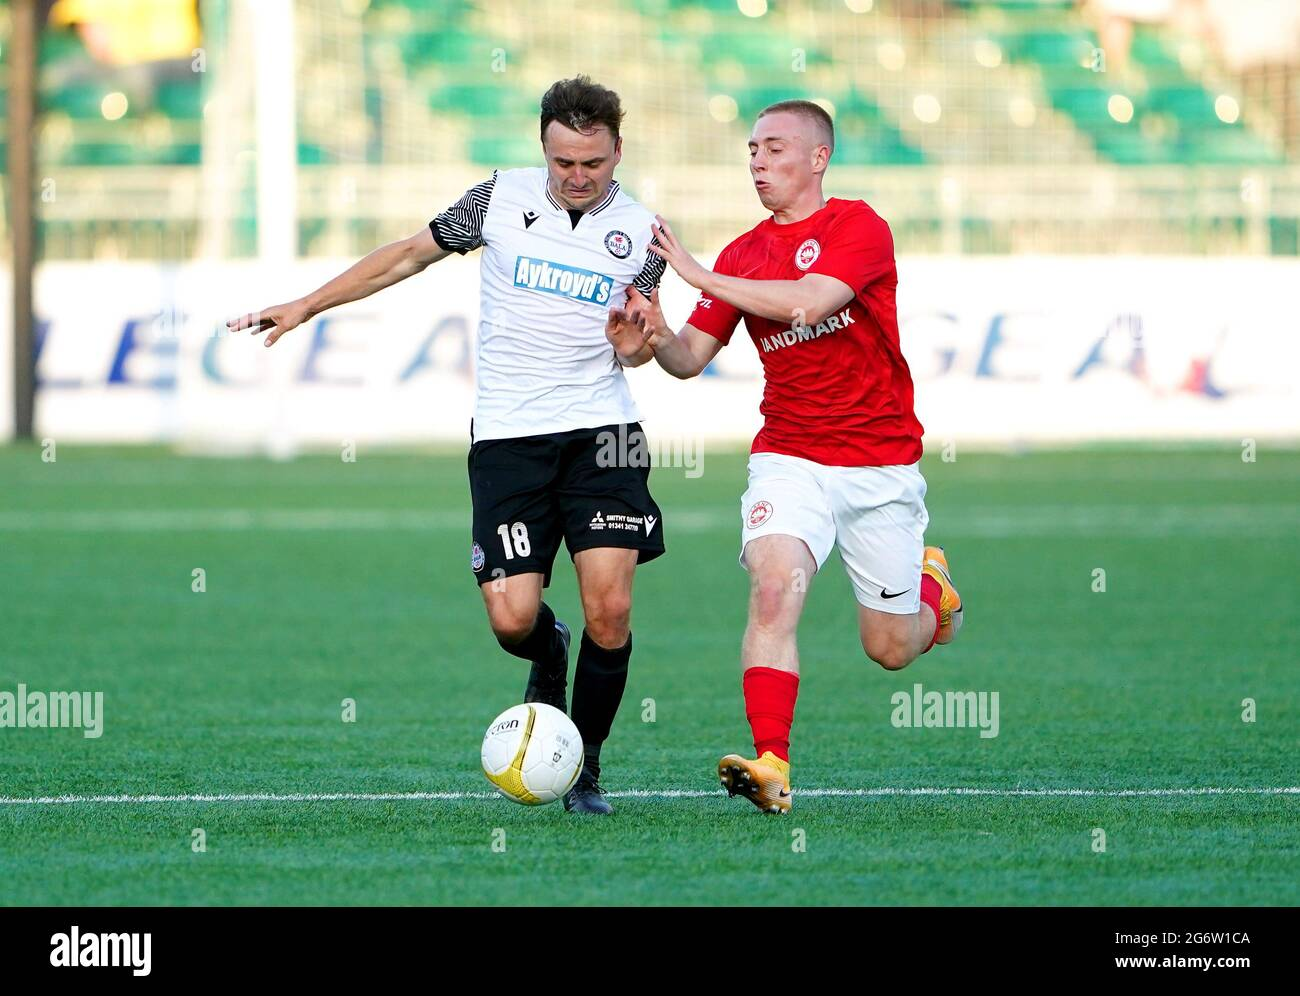 Newsnow aims to be the world's most accurate and comprehensive uefa europa. Bala S Paul Rutherford Left And Larne S Conor Mckendry Battle For The Ball During The Uefa Europa Conference League First Qualifying Round First Leg Match At Park Hall Oswestry Picture Date Thursday July